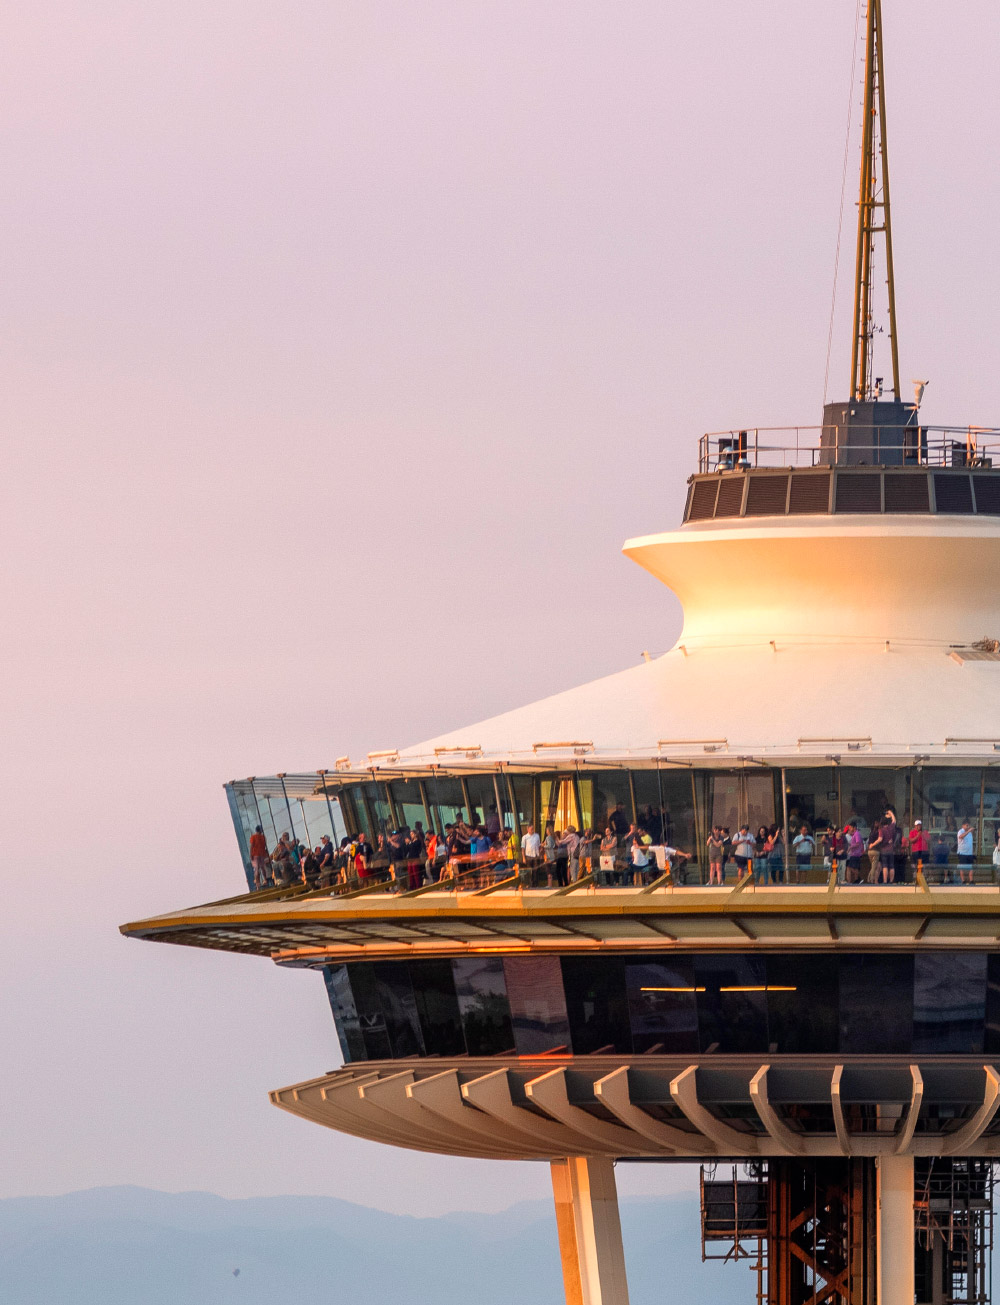 Image of the Seattle Space Needle